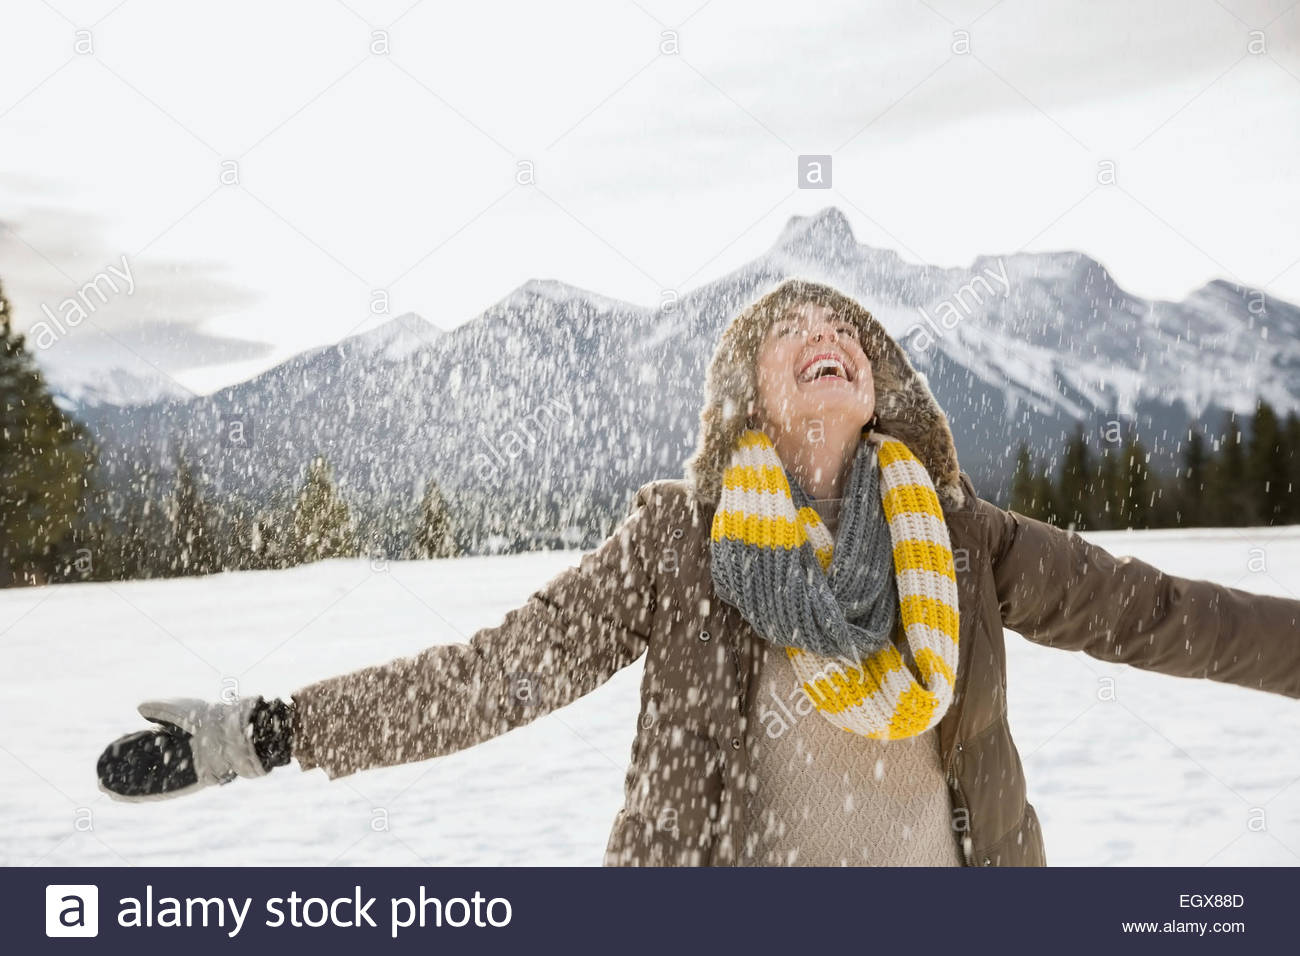 Snow falling around exuberant woman with arms outstretched - Stock Image